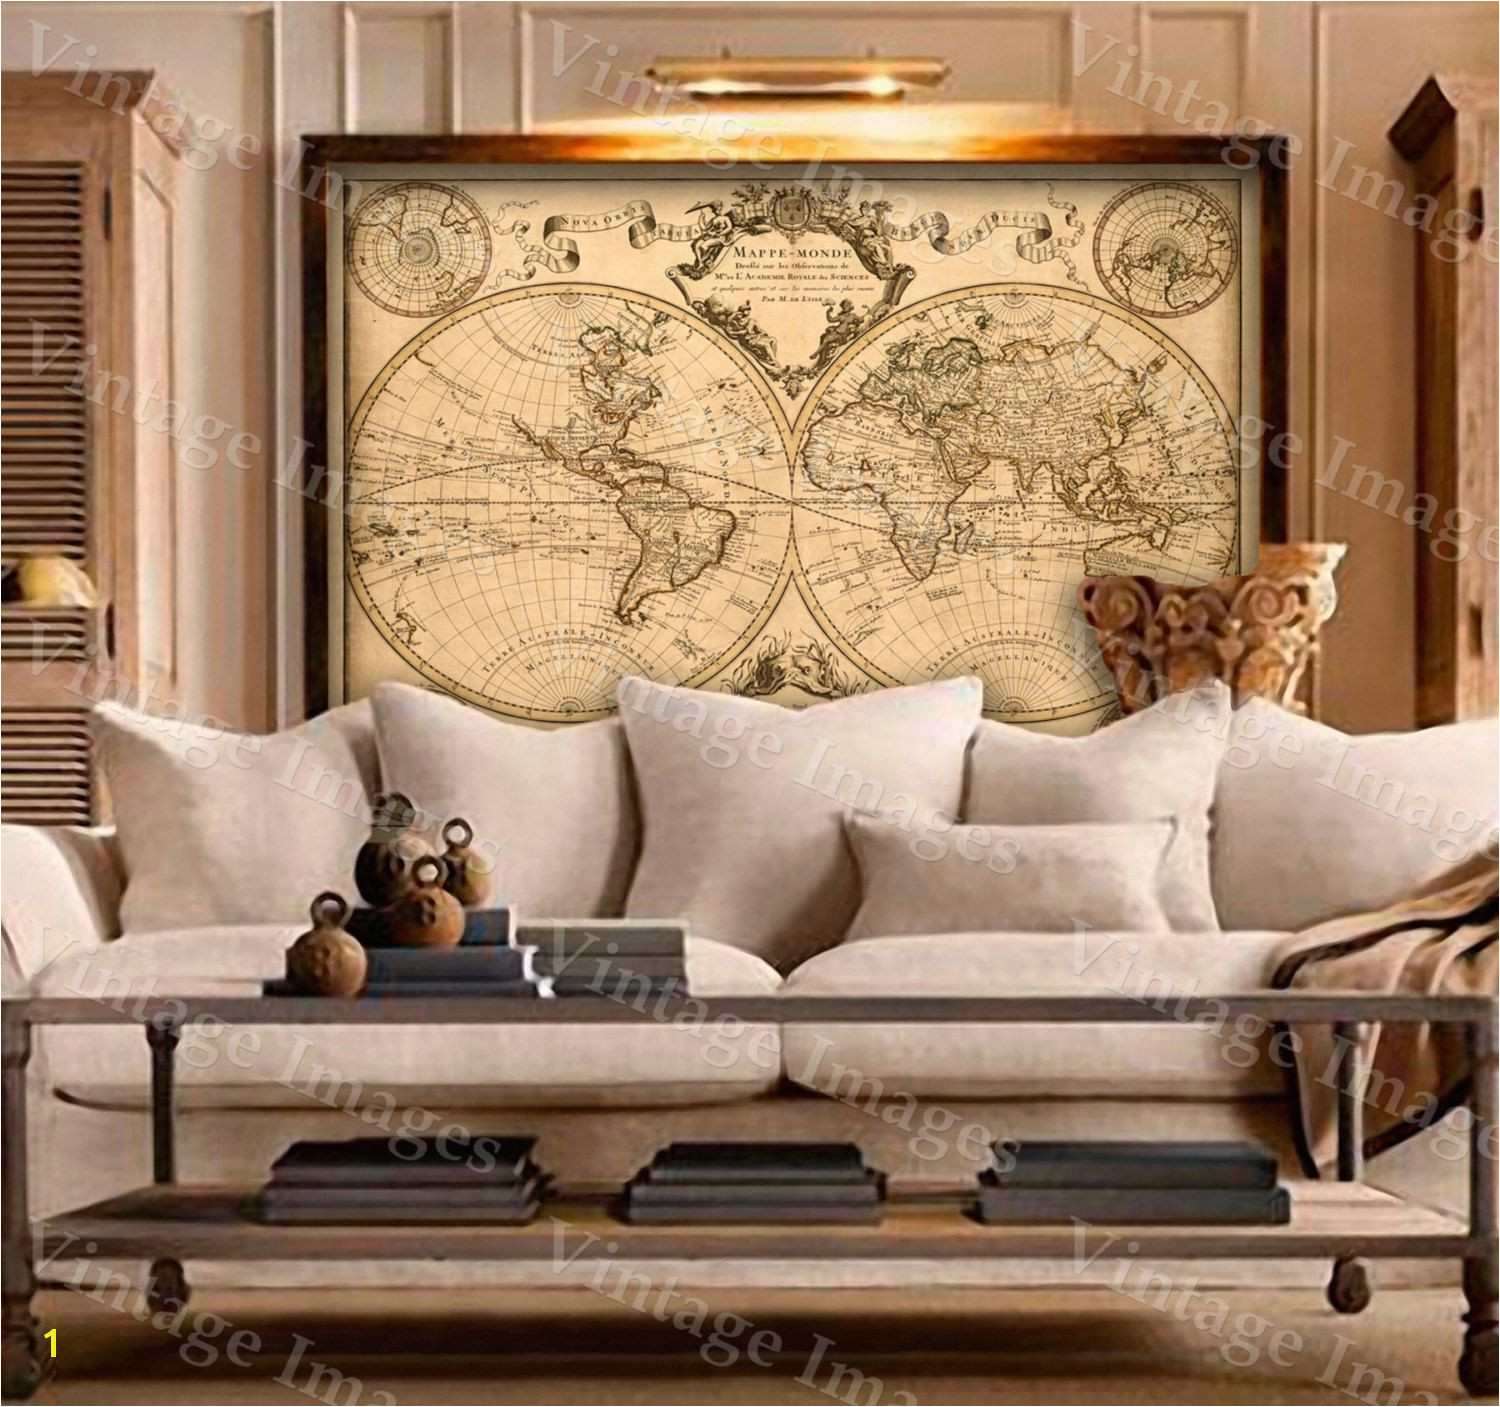 L Isle s 1720 Old World Map Historic Map Antique Restoration Hardware Style World Map Guillaume de L Isle mappe monde Wall Map Home Decor pinned by